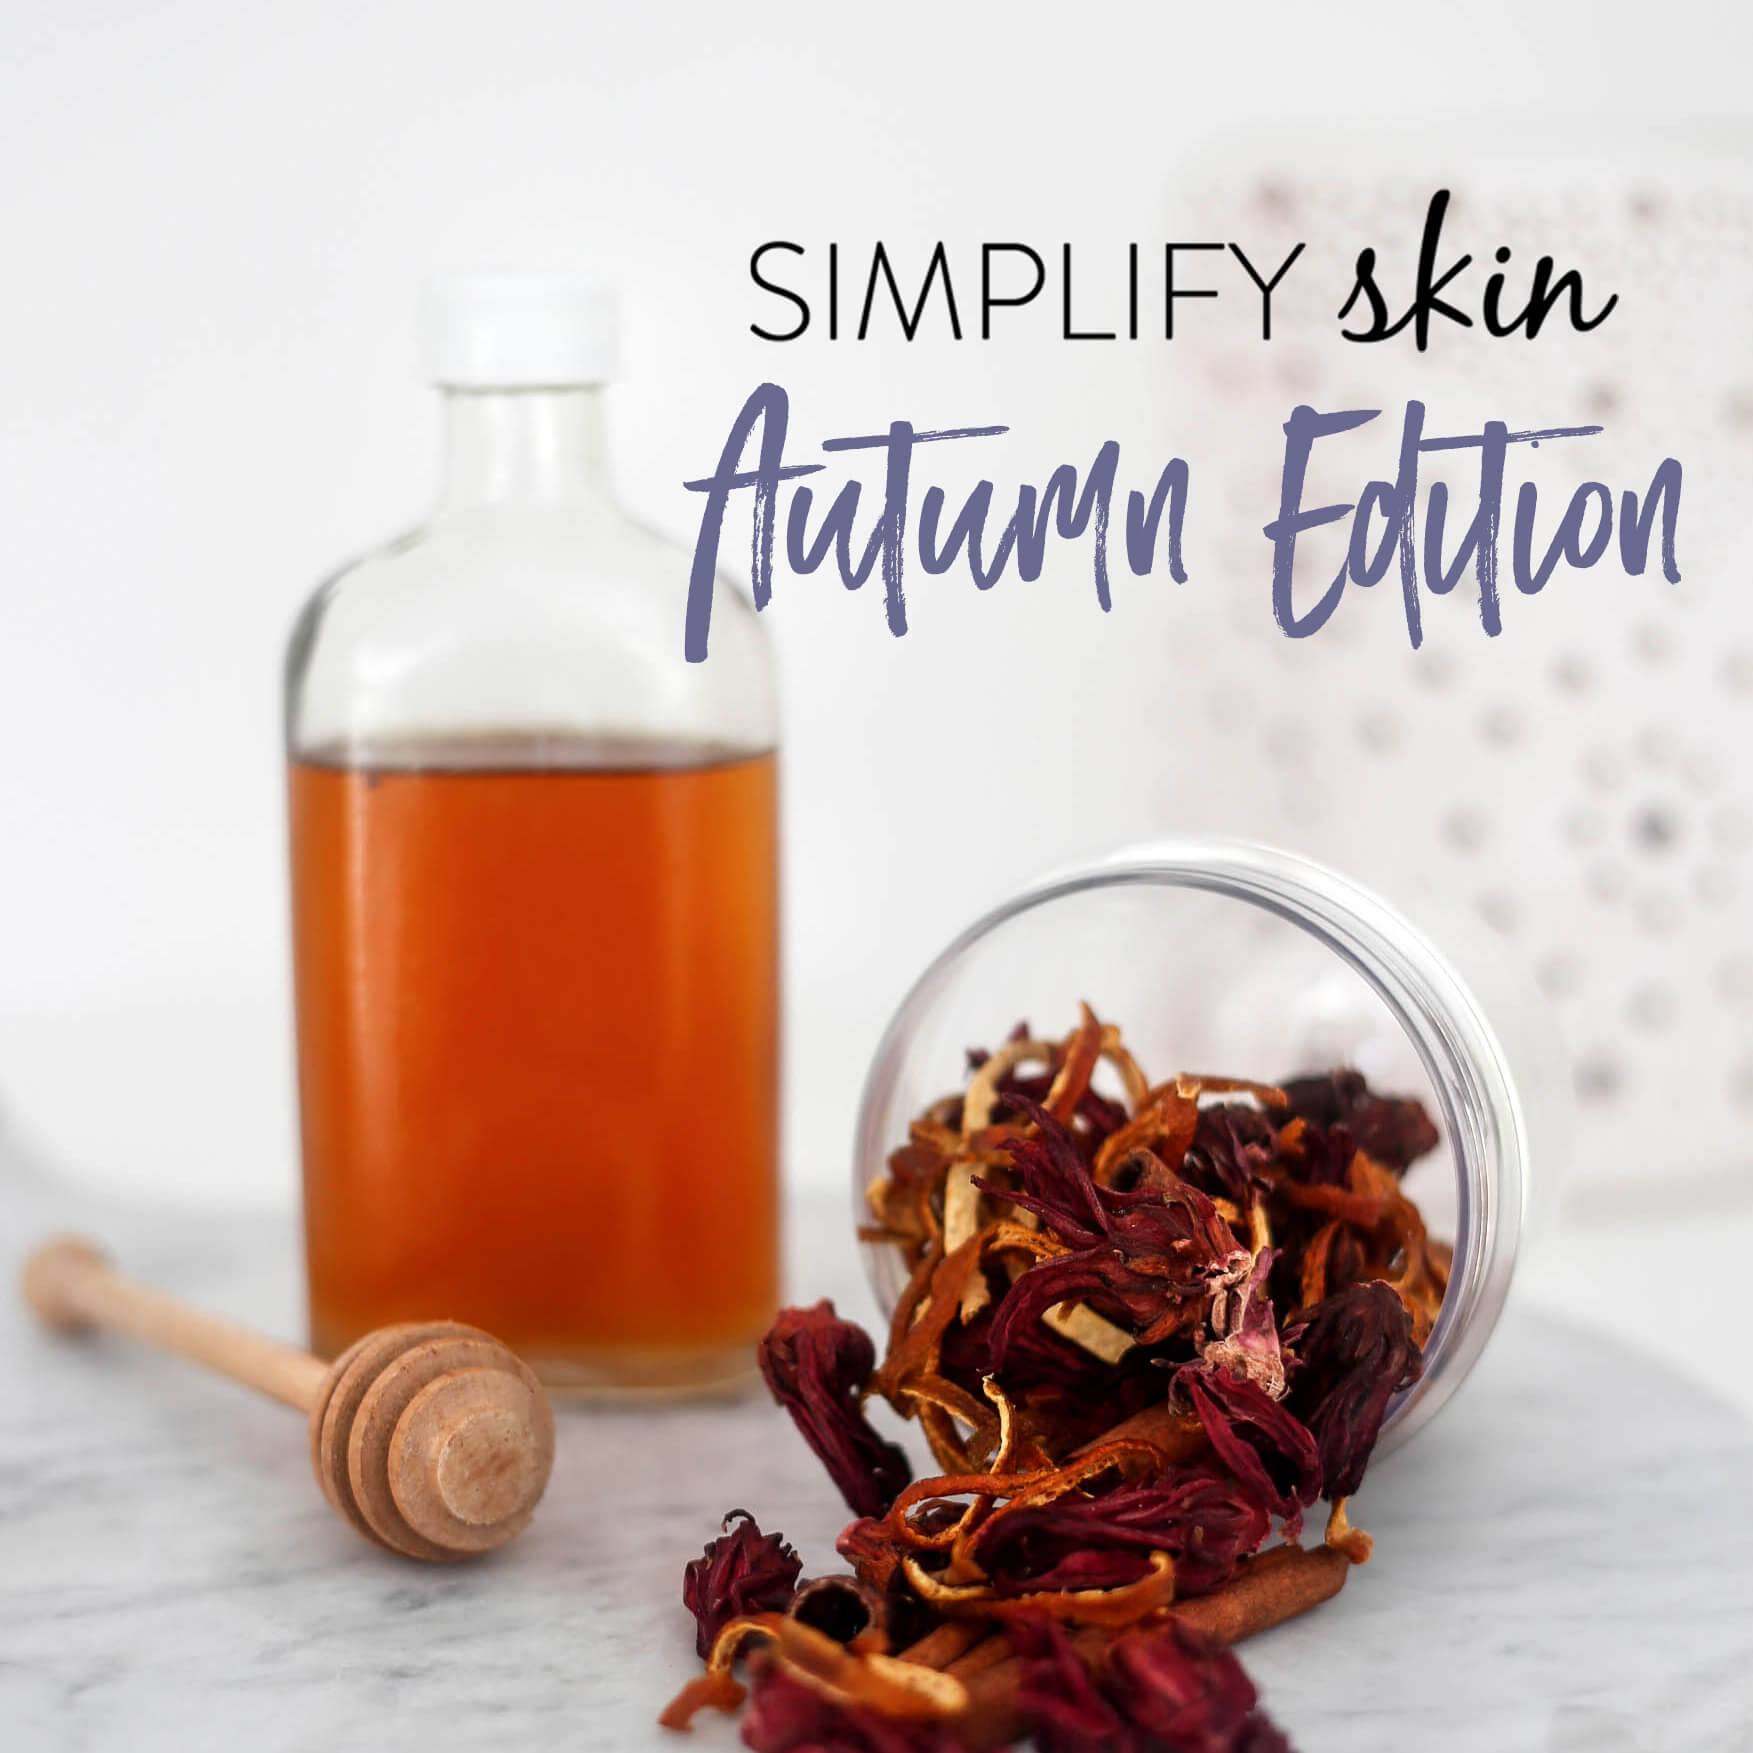 SIMPLIFY Skin SEASONS: Autumn | littlegreendot.com